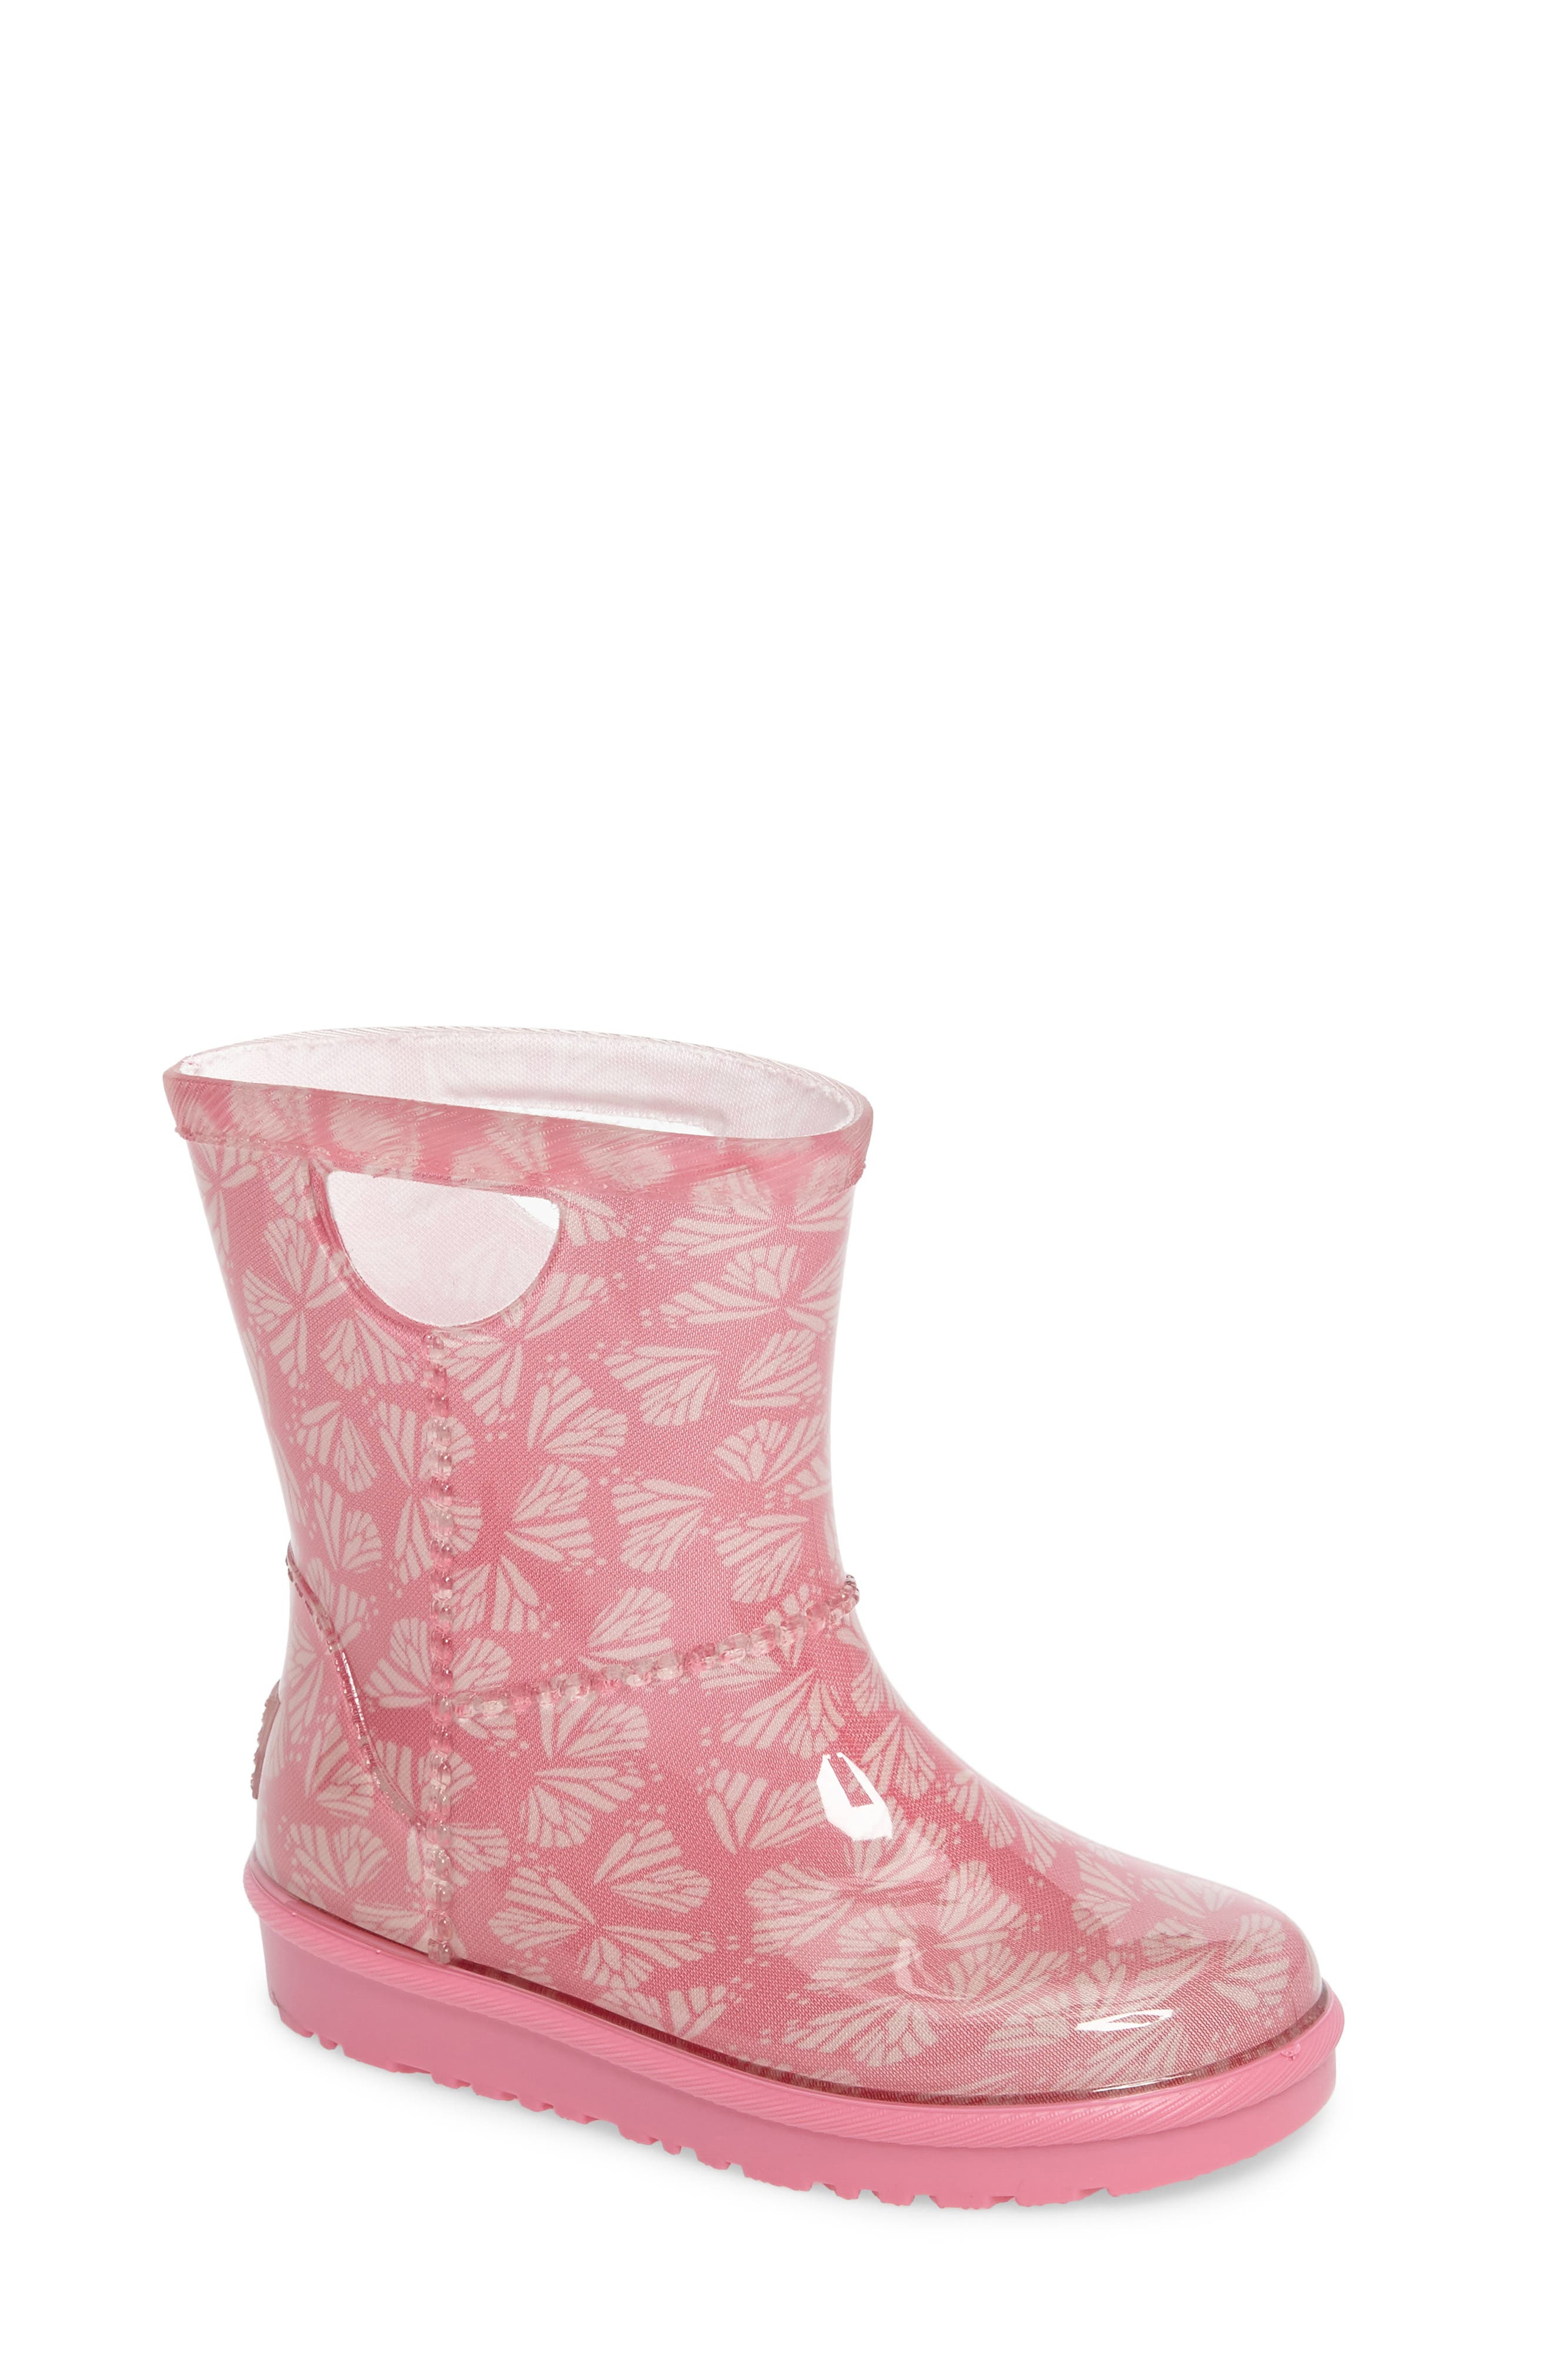 Alternate Image 1 Selected - UGG® Rahjee Rain Boot (Walker & Toddler)